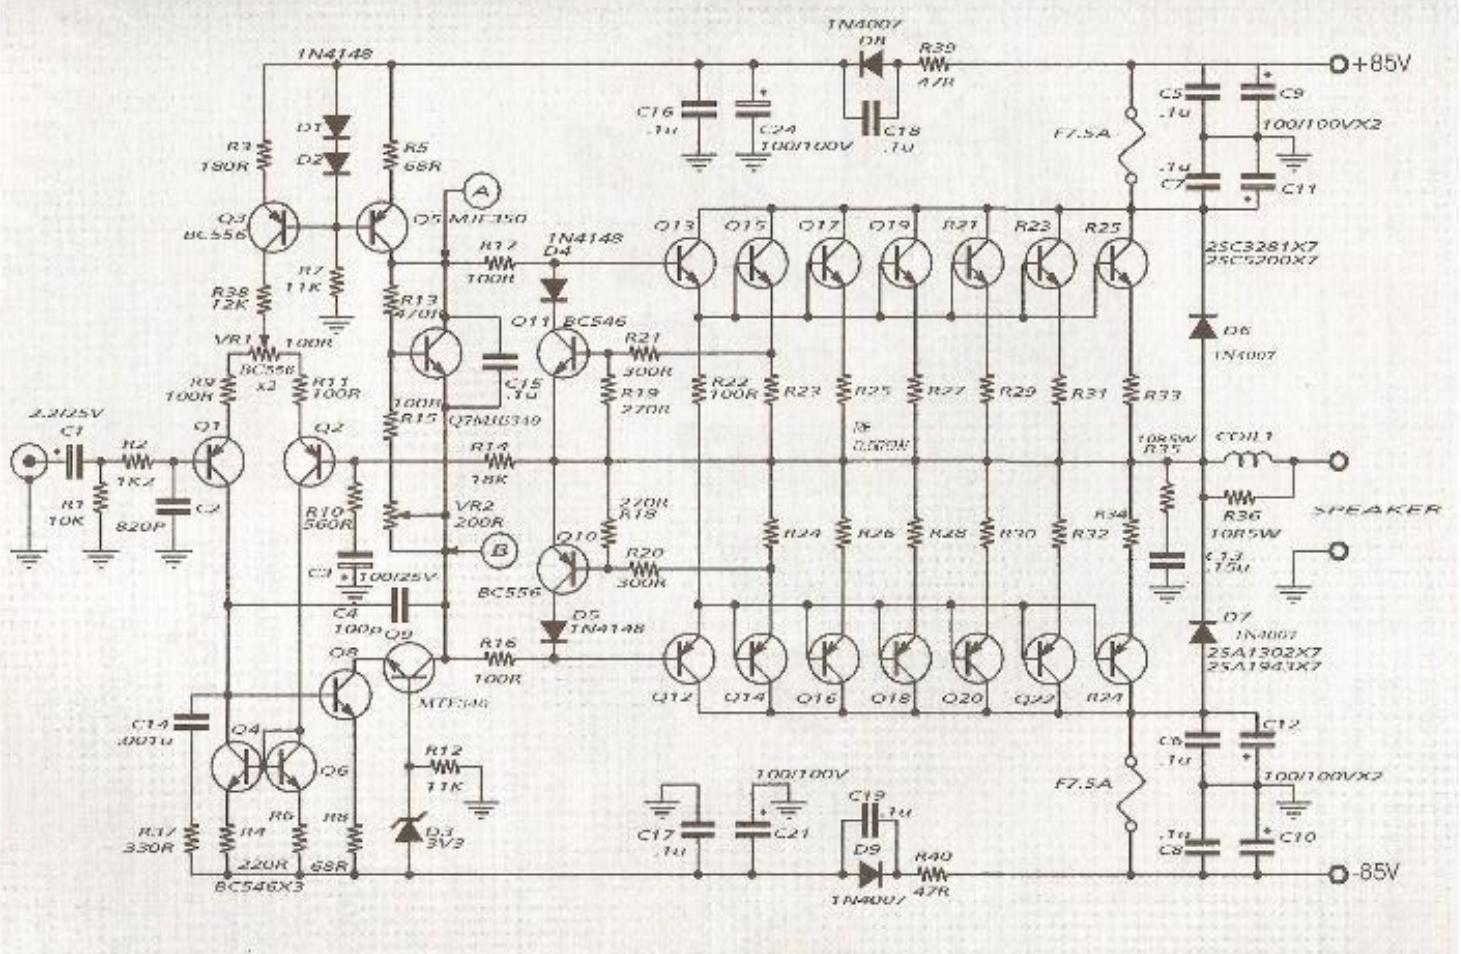 3000w audio amplifier circuit diagram pdf